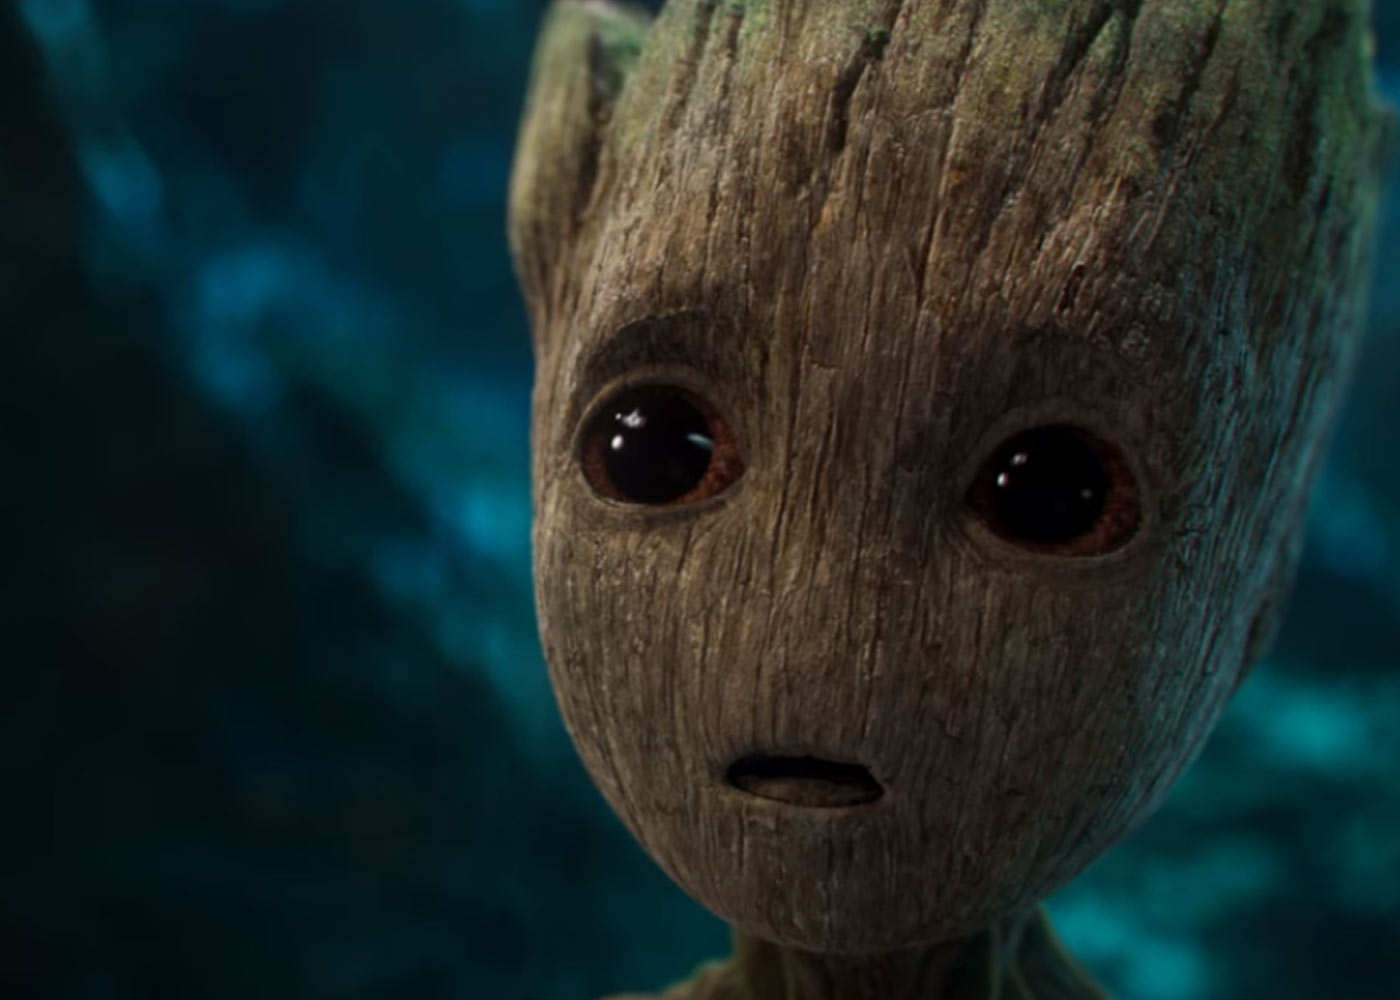 James Gunn Reveals Details About Guardians of the Galaxy 3